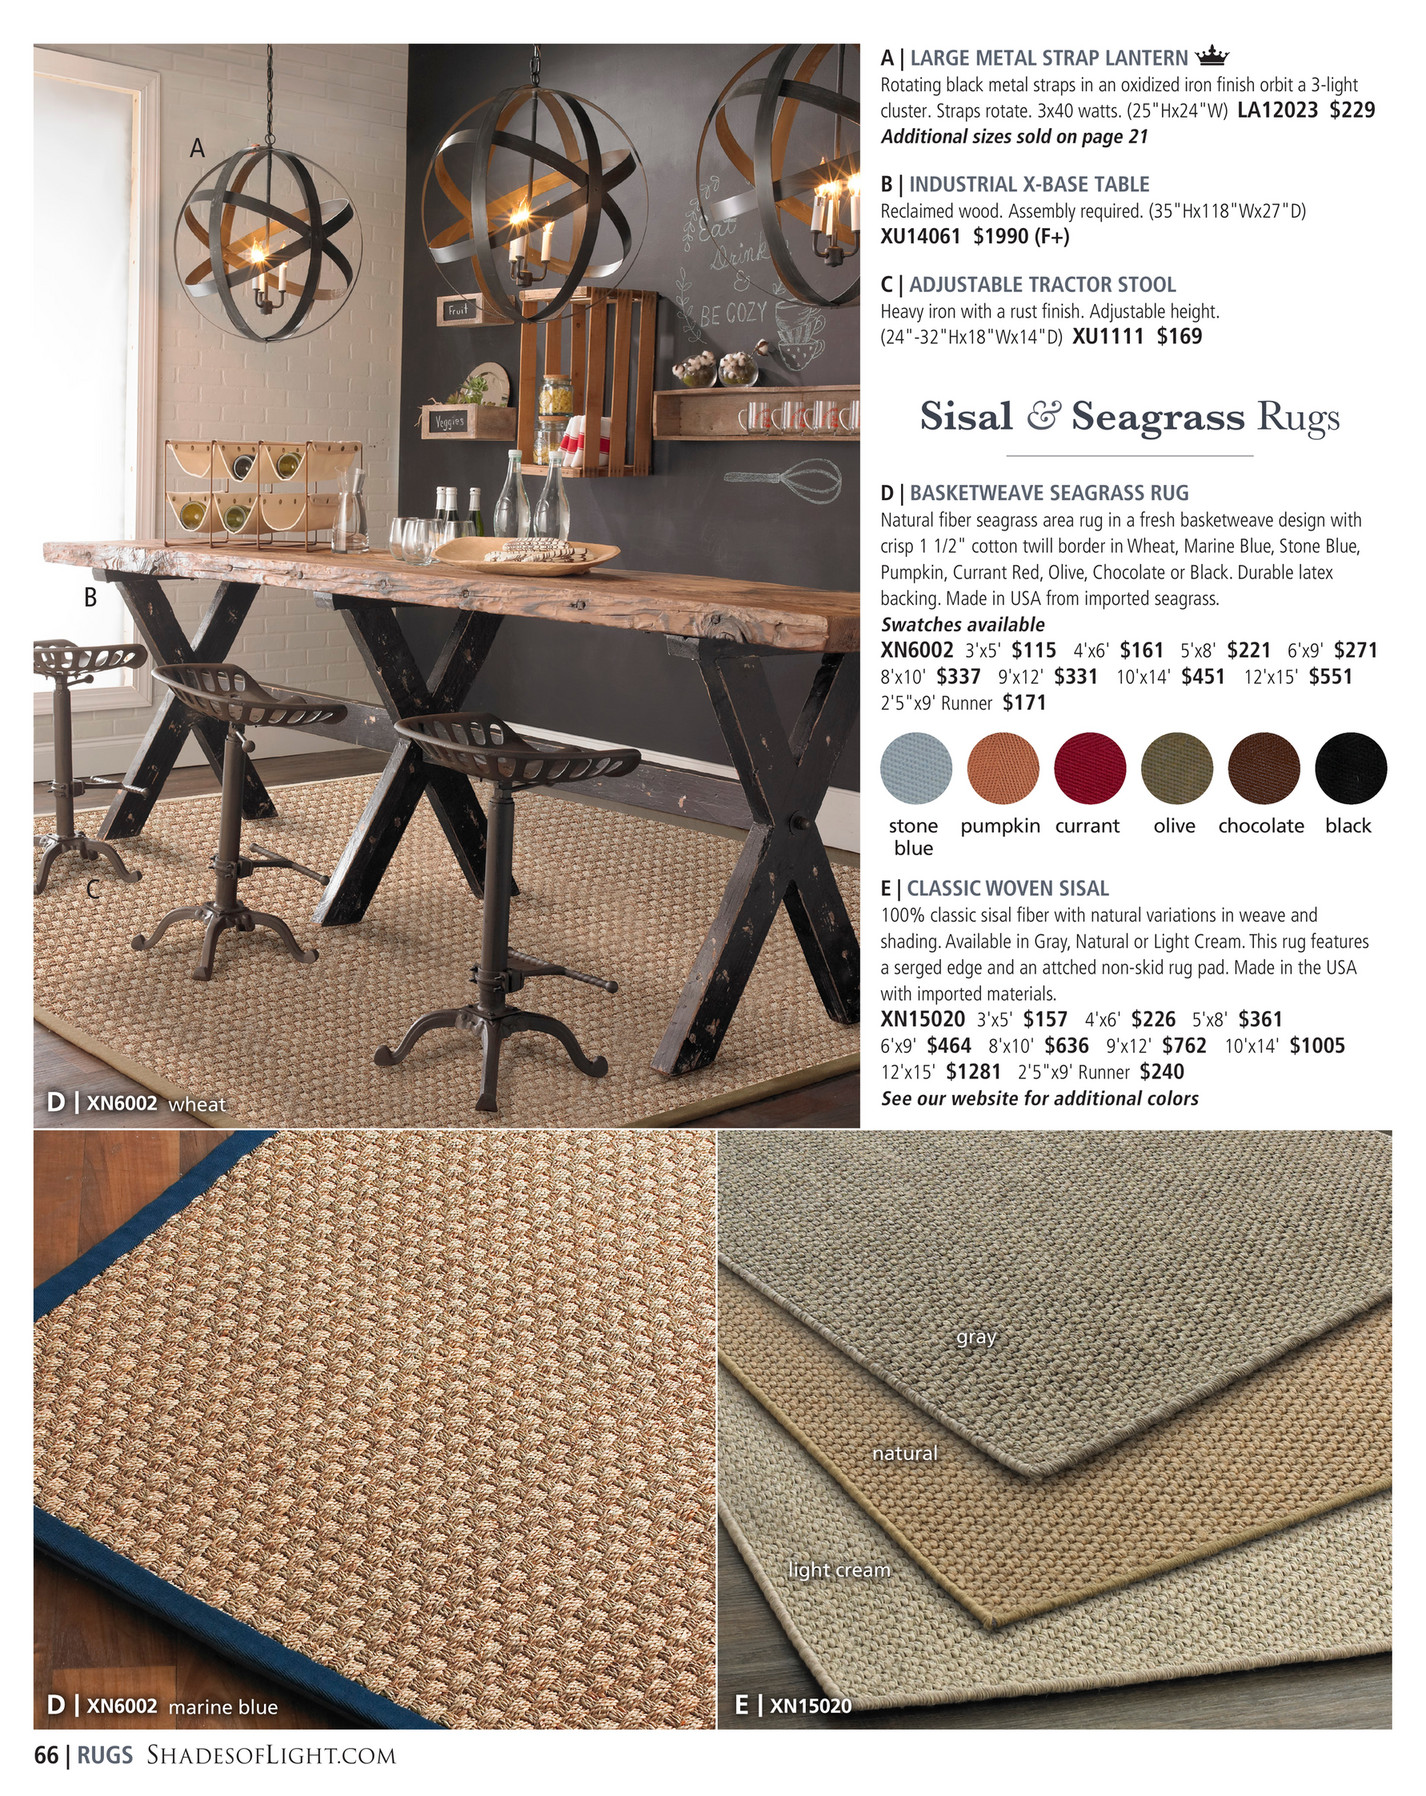 We Searched For The Best Flokati Rug And Found You A Winner!